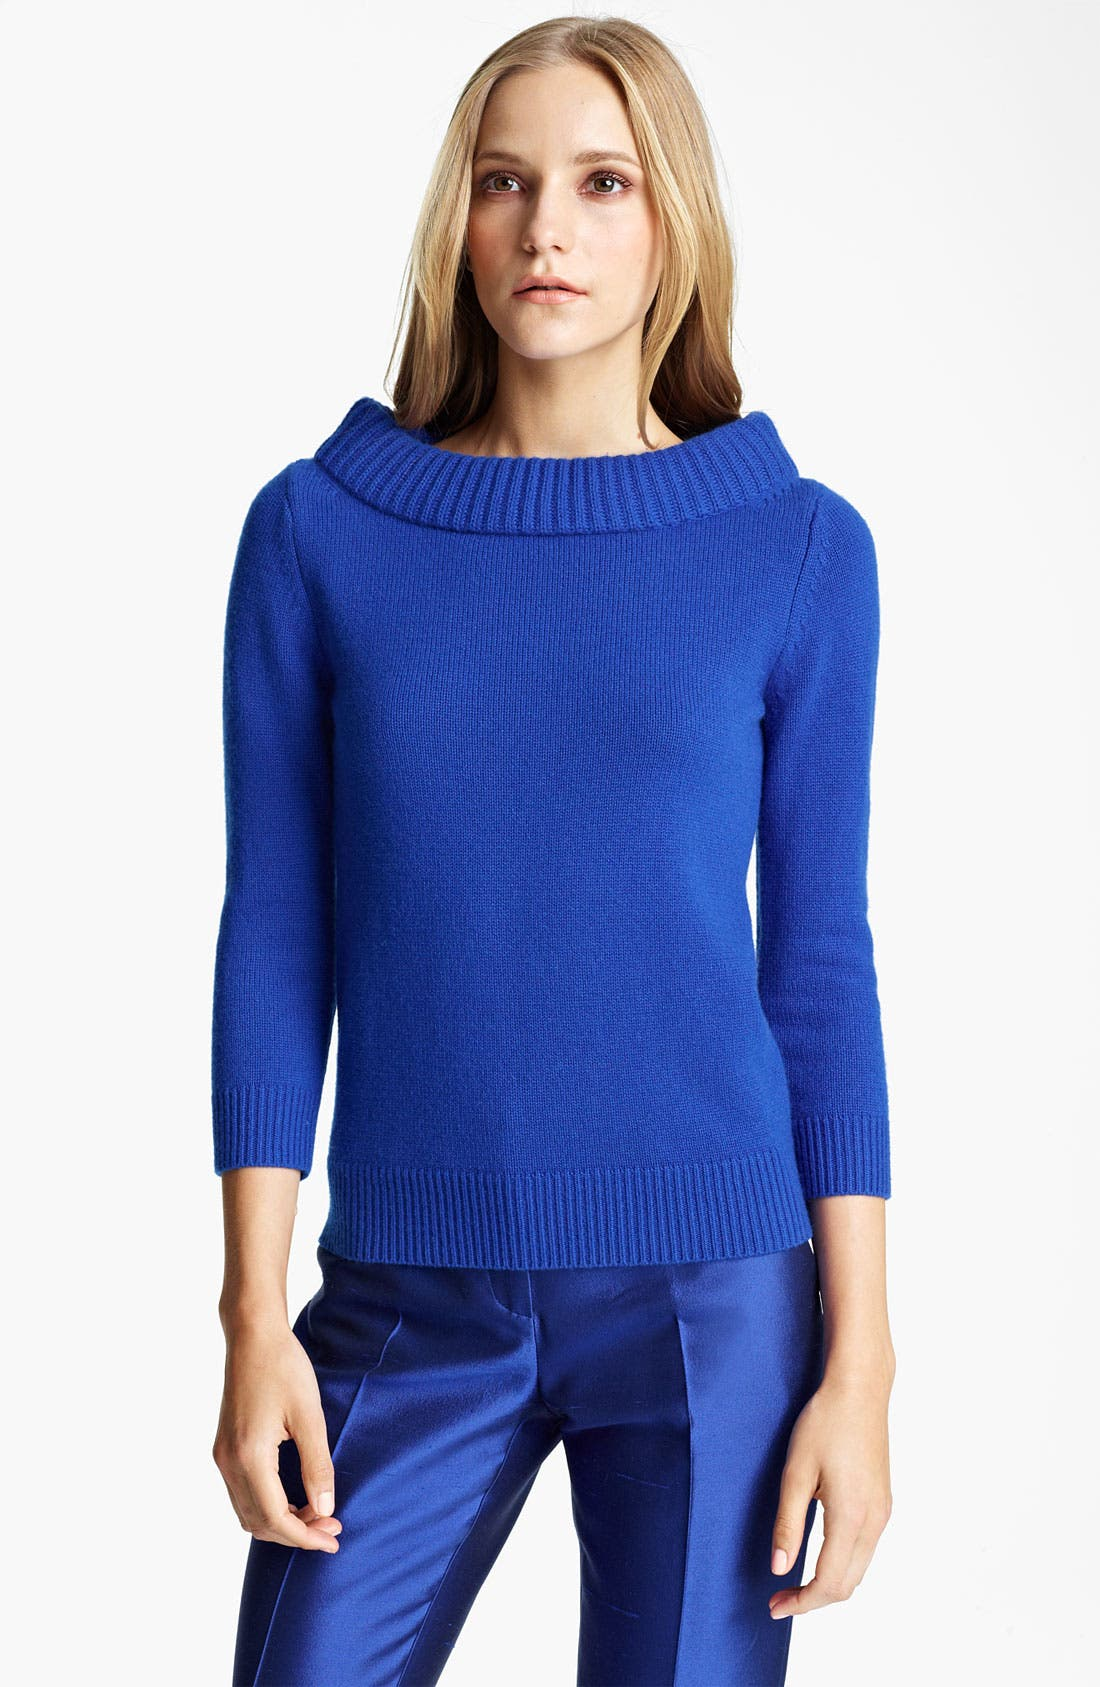 Alternate Image 1 Selected - Michael Kors Cashmere Sweater